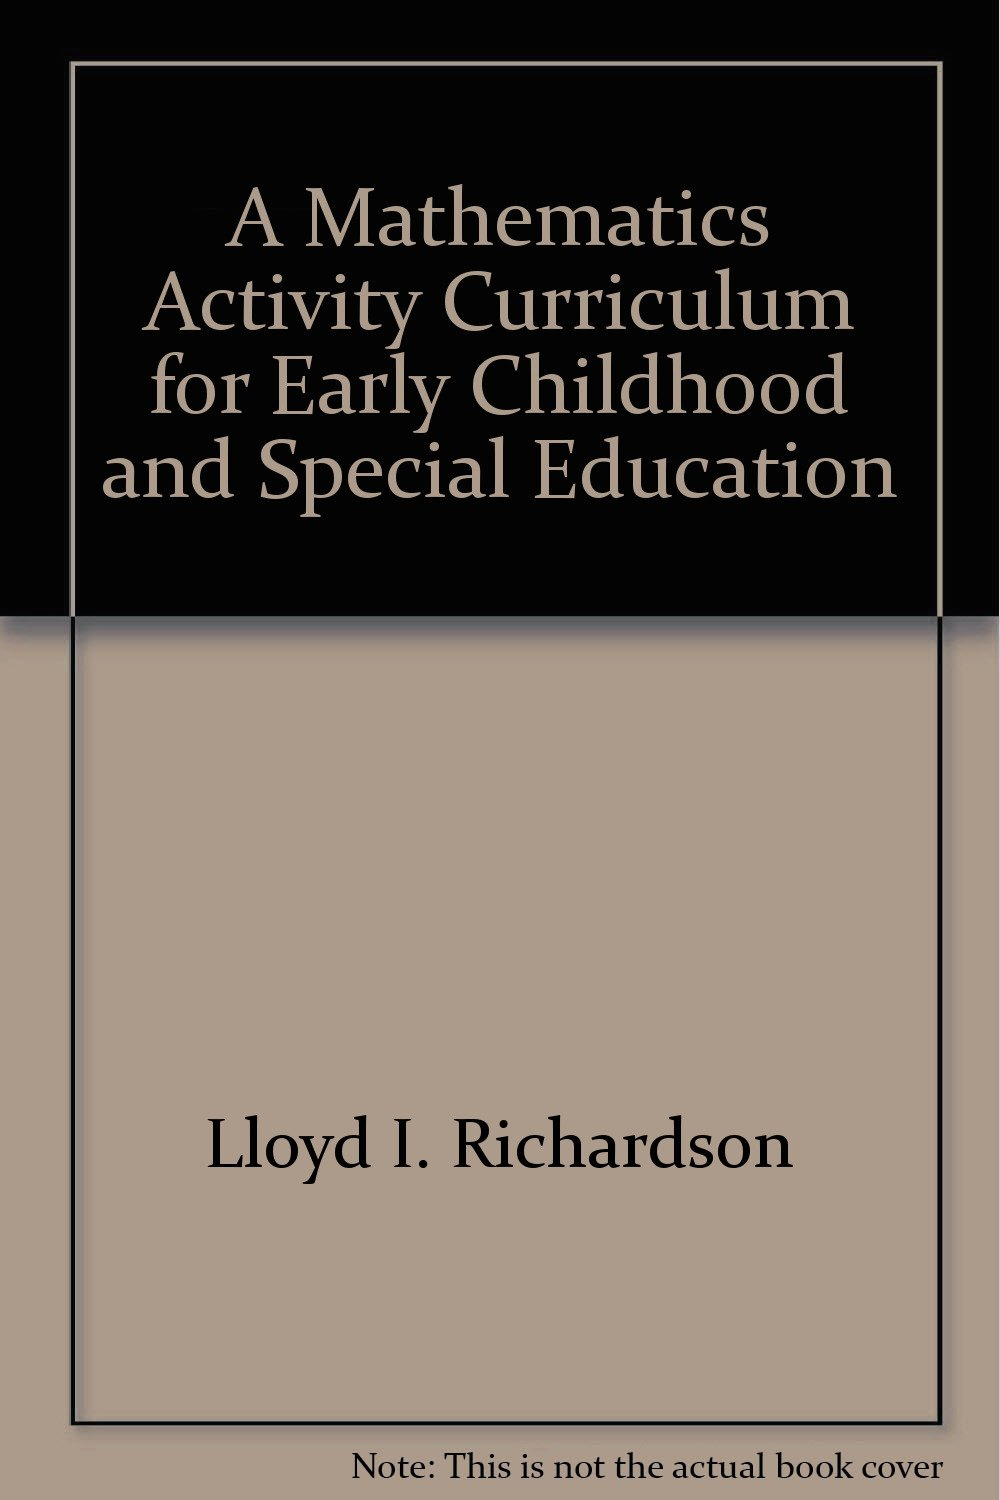 A Mathematics Activity Curriculum for Early Childhood and Special Education, Lloyd I. Richardson; et al